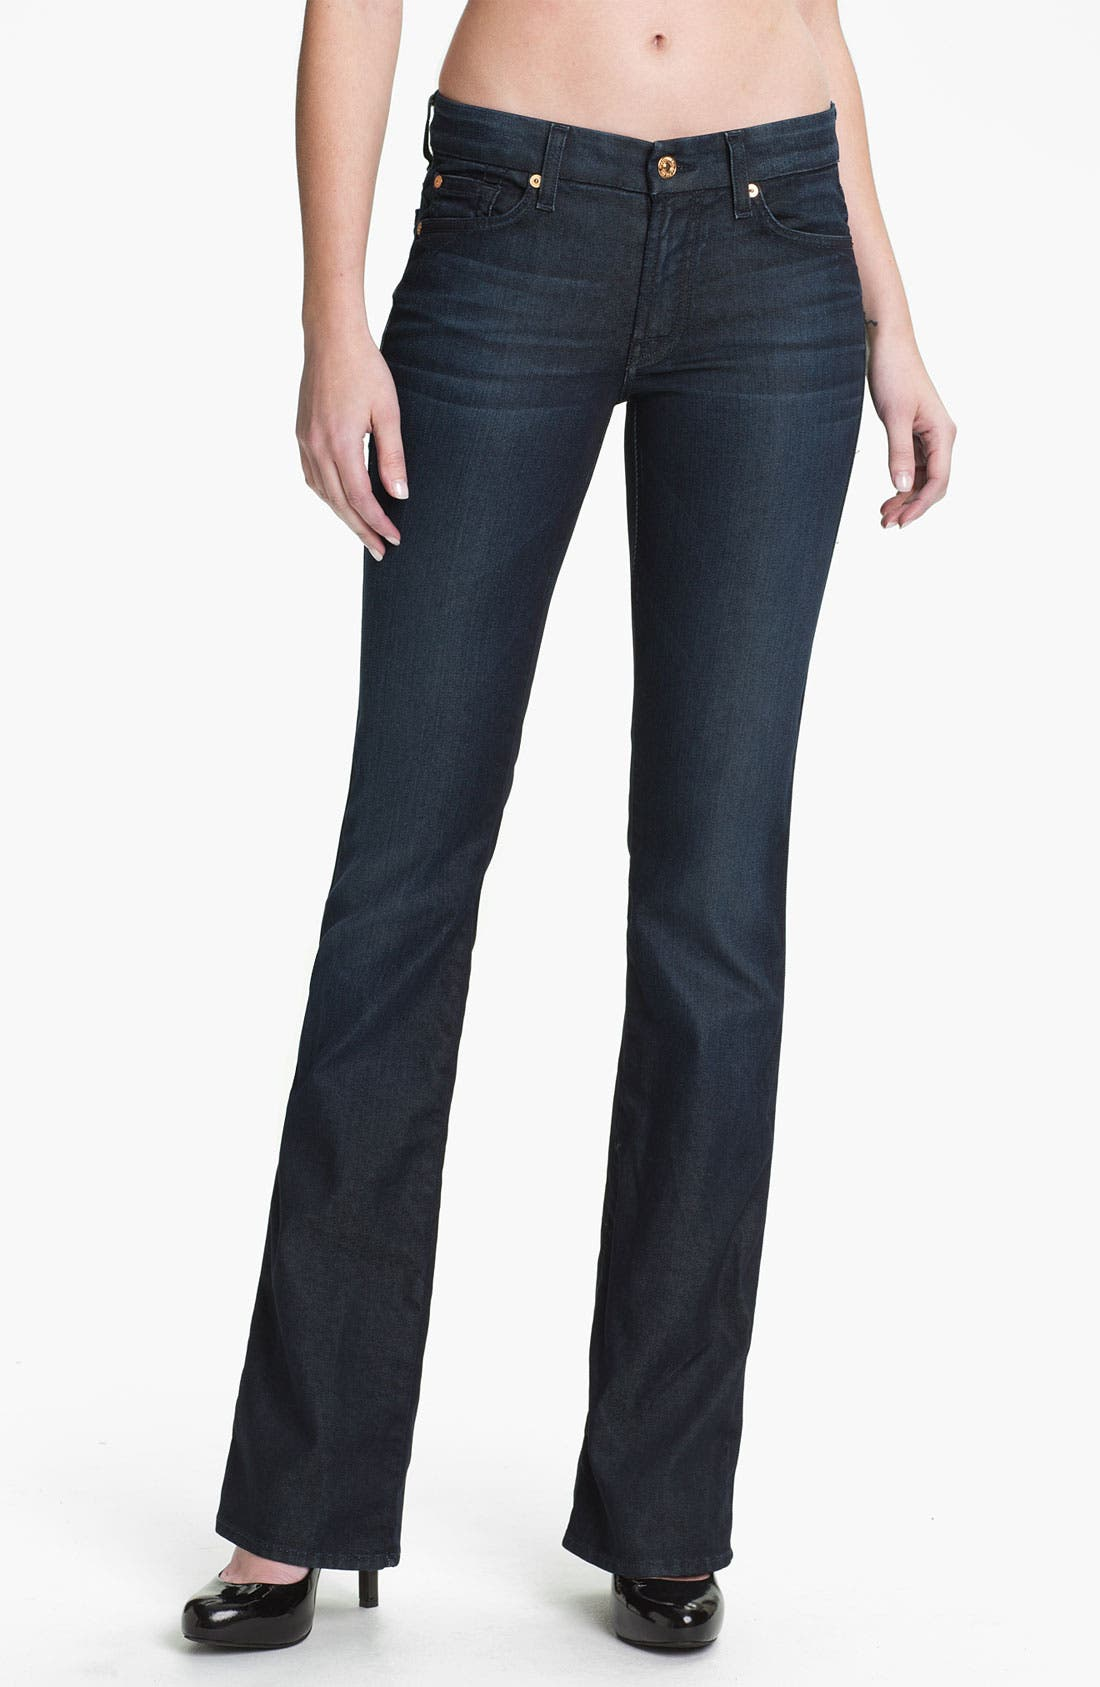 Main Image - 7 For All Mankind® 'Kimmie' Bootcut Jeans (Reflective Night Star)